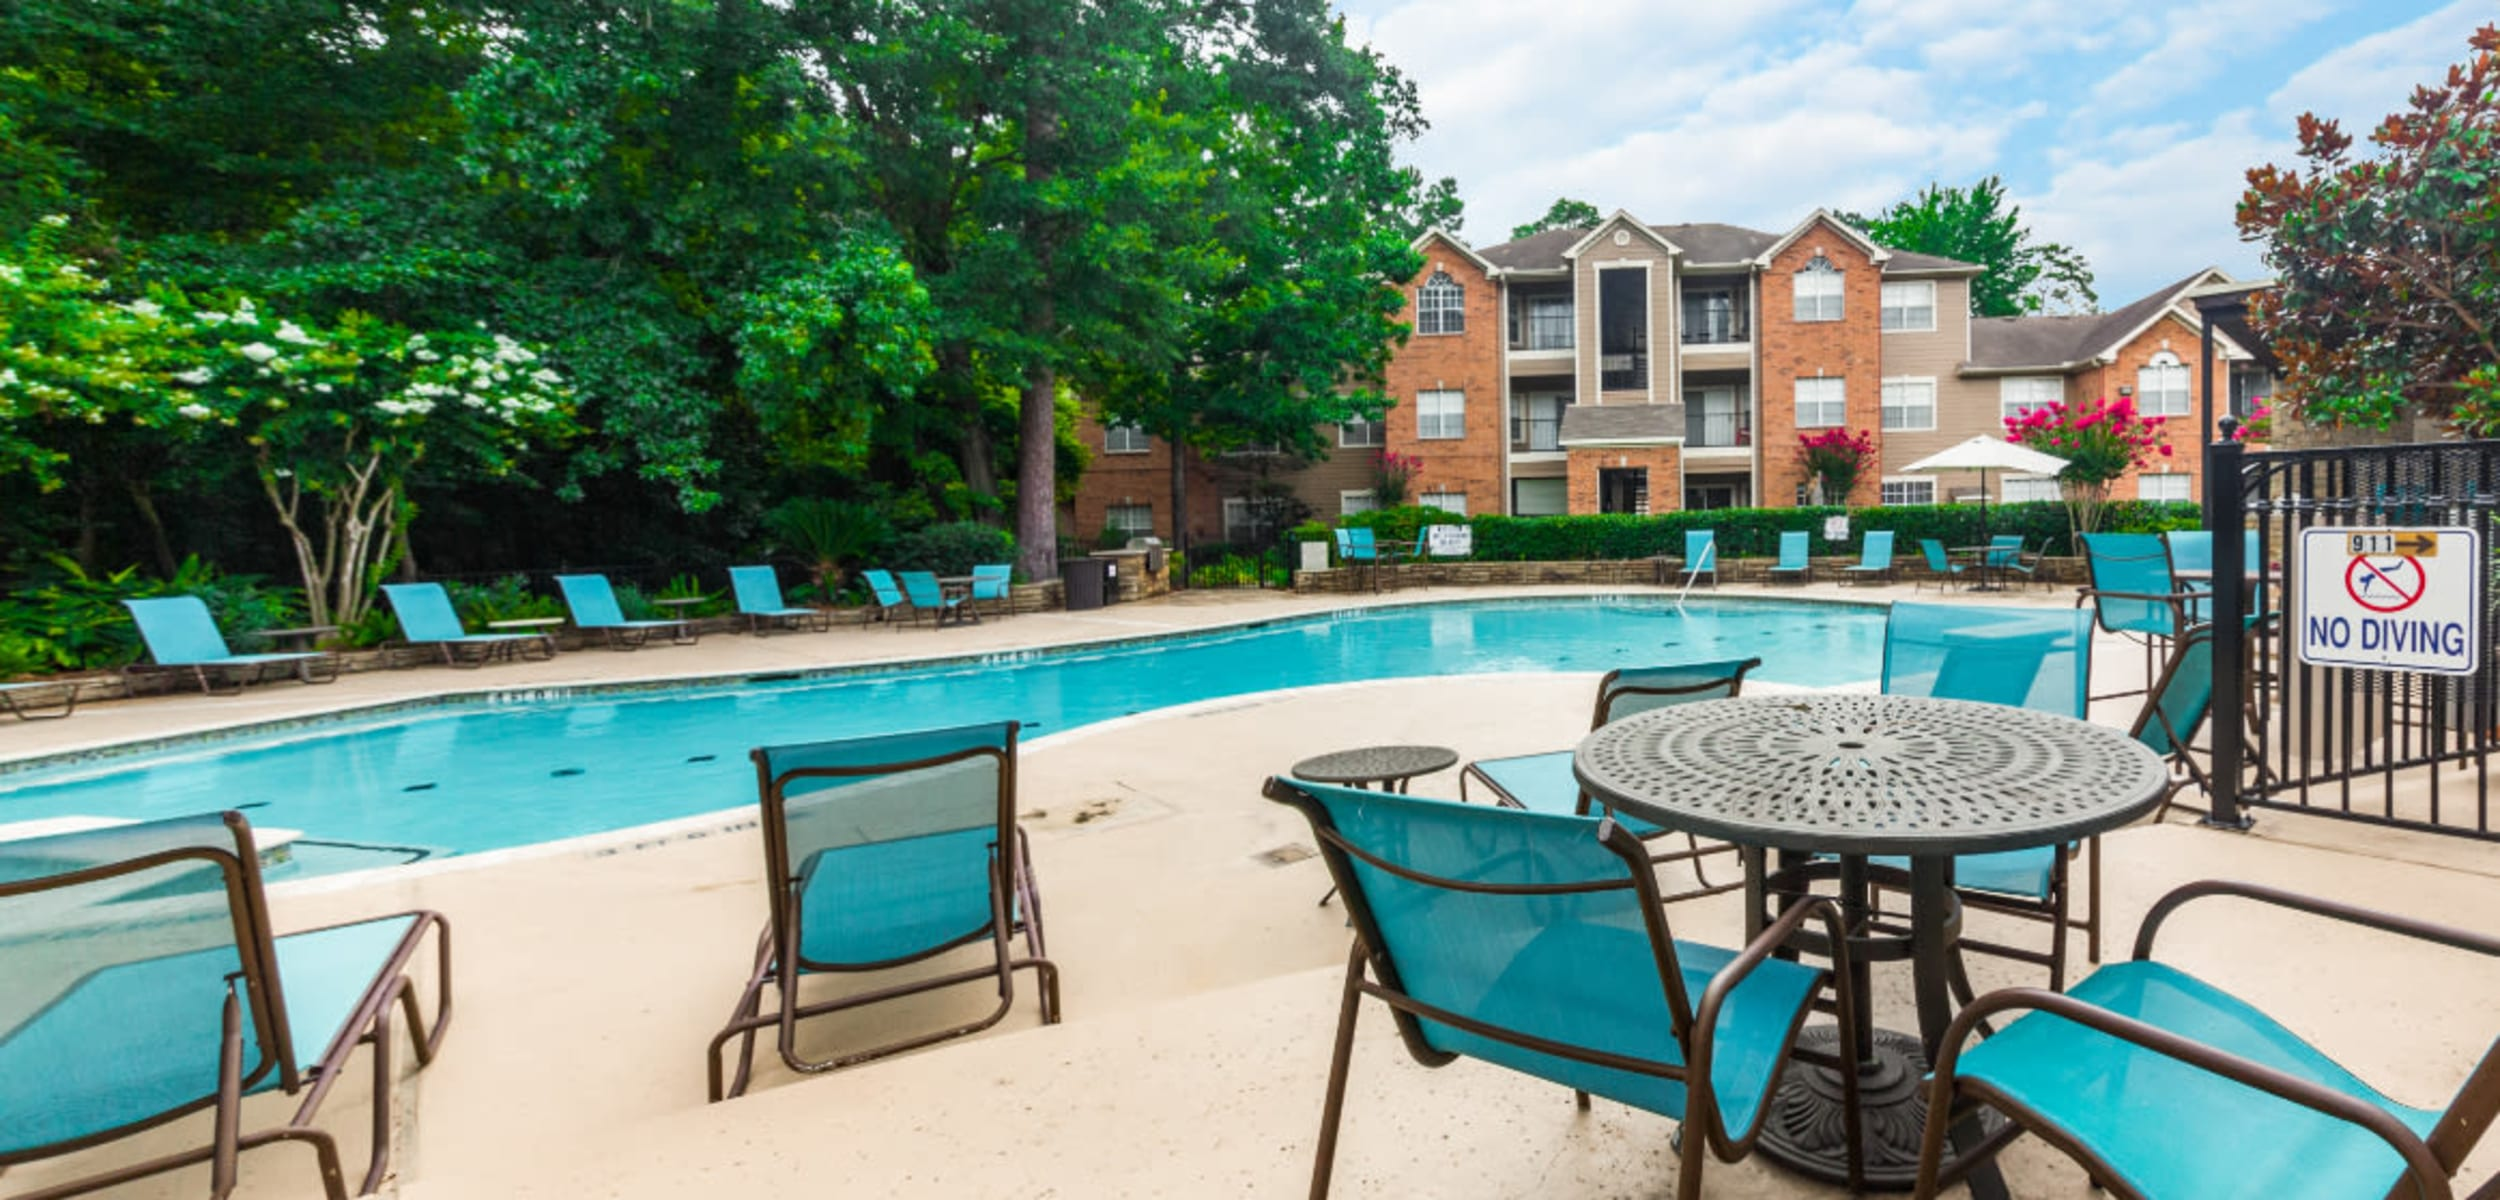 Overlooking pool and patio lounge chairs and tables at Marquis at Kingwood in Kingwood, Texas